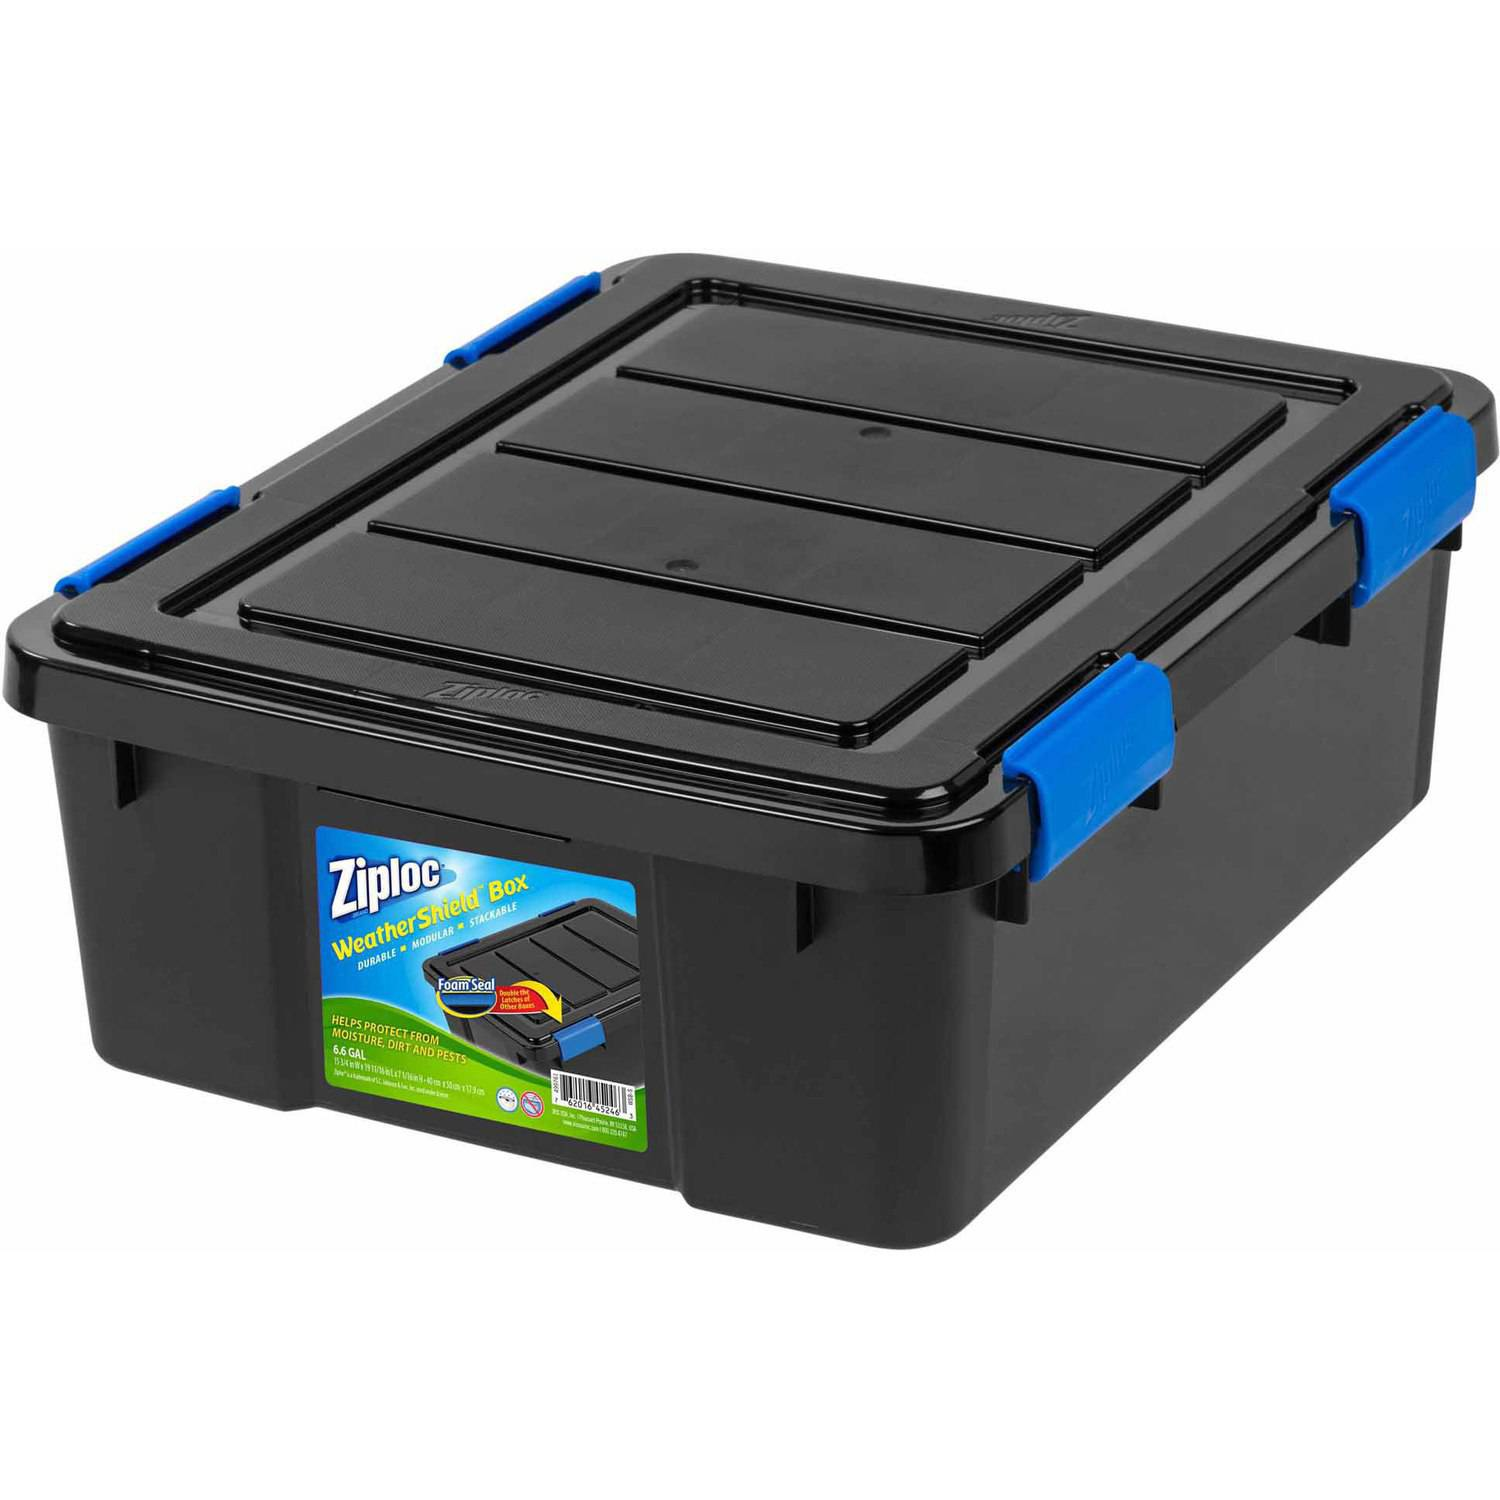 Ziploc WeatherShield Storage Box, Small